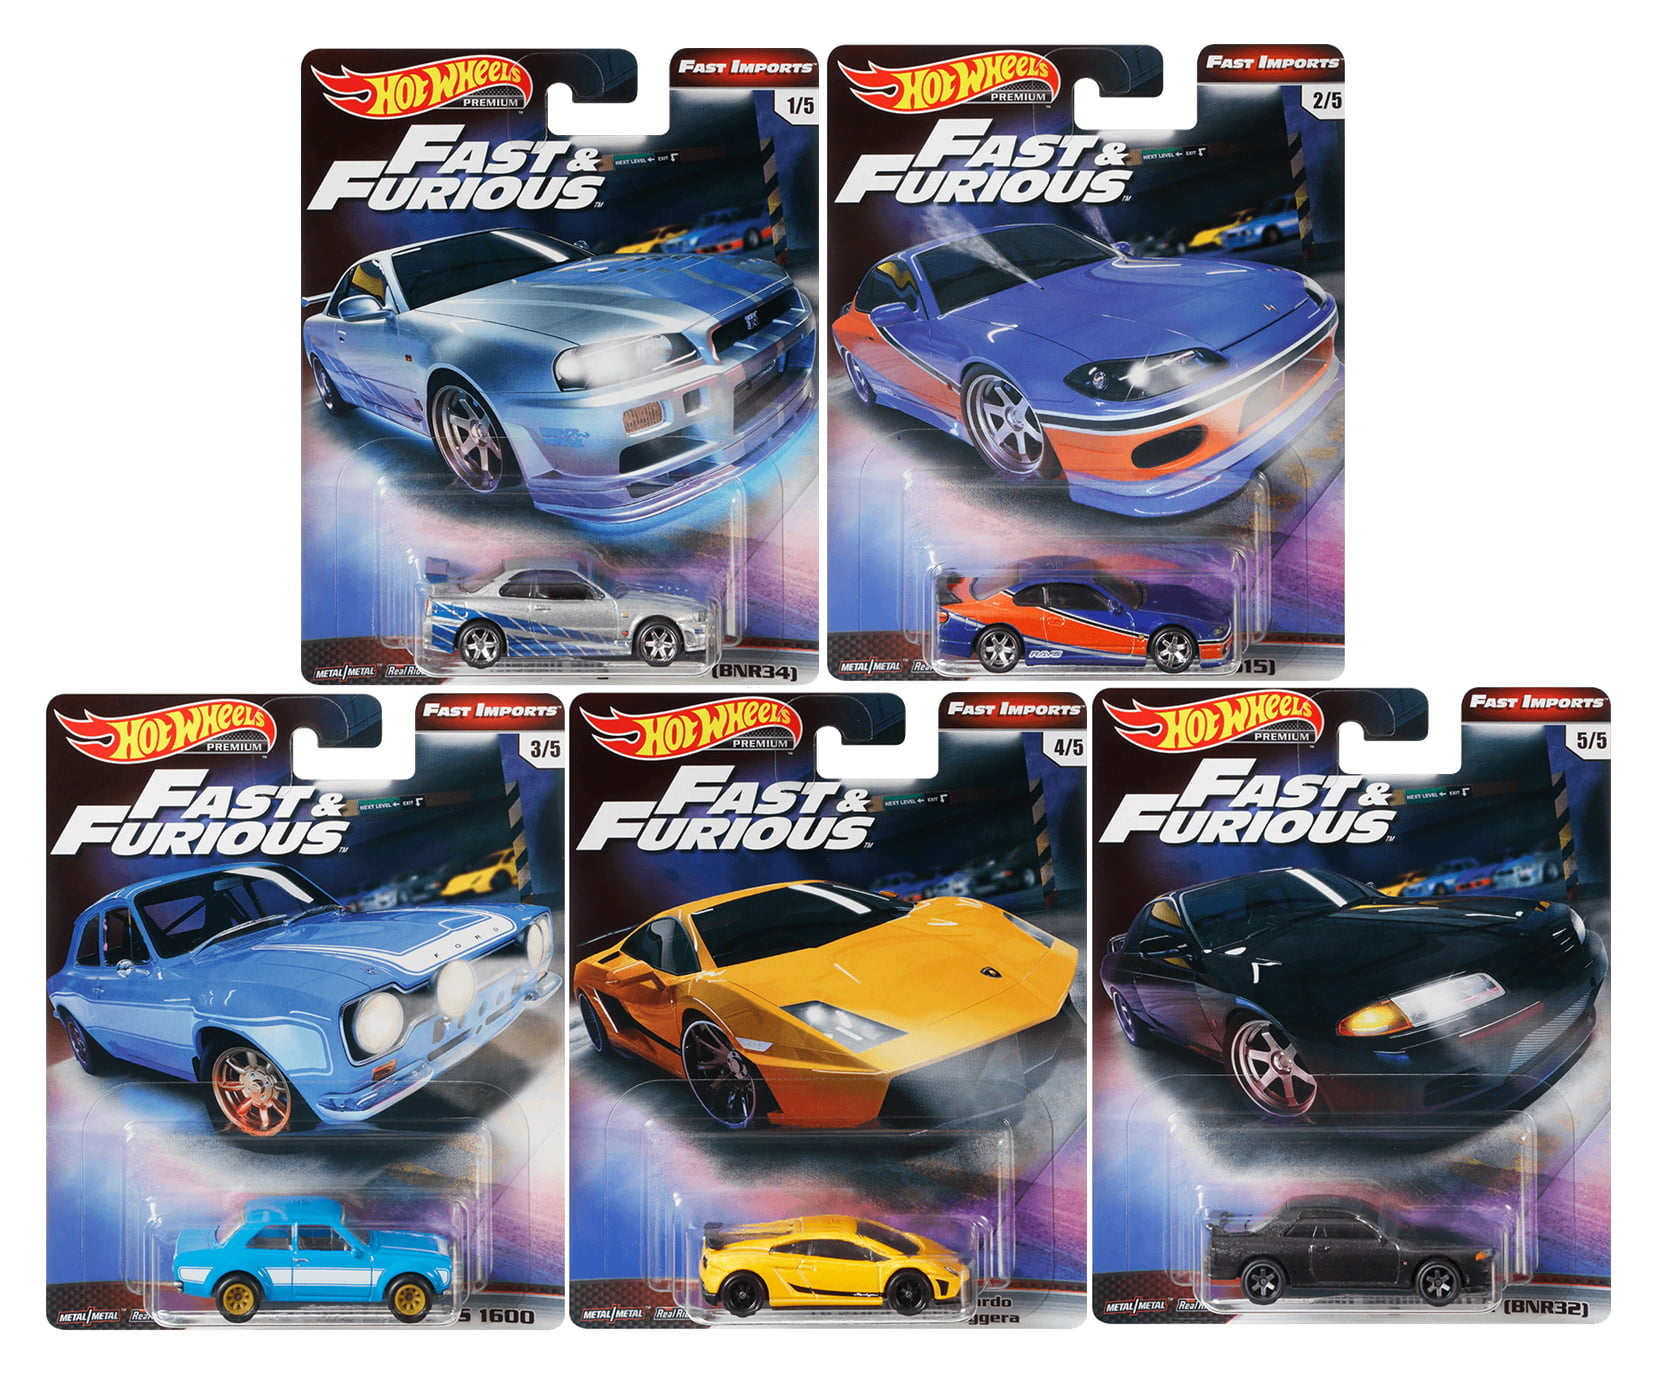 HOT WHEELS 1:64 SCALE FAST /& FURIOUS COMPLETE SET OF 5 DIE-CAST VEHICLES 2020